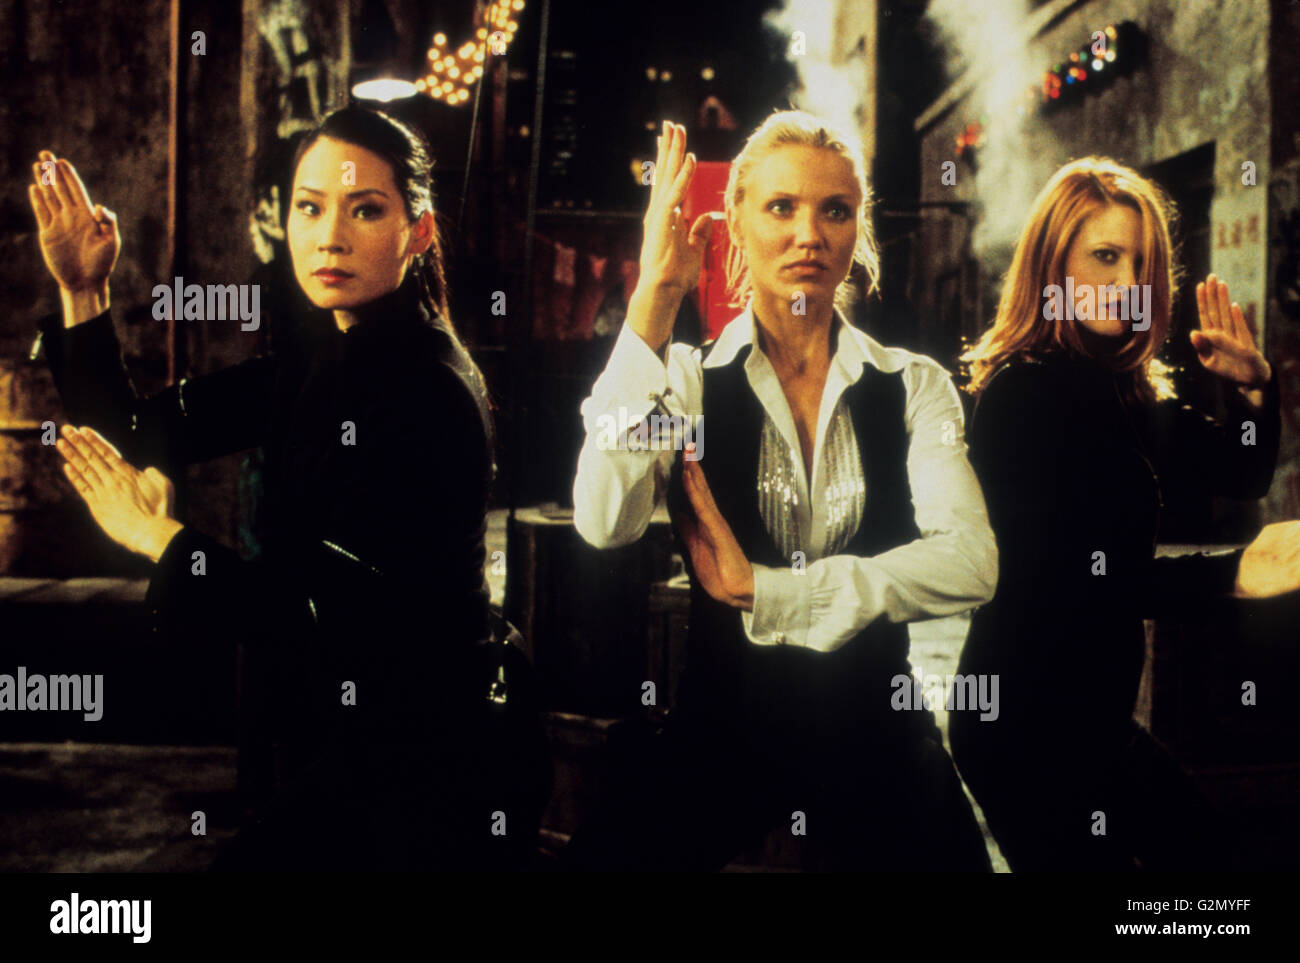 charlie's angels,2000 - Stock Image